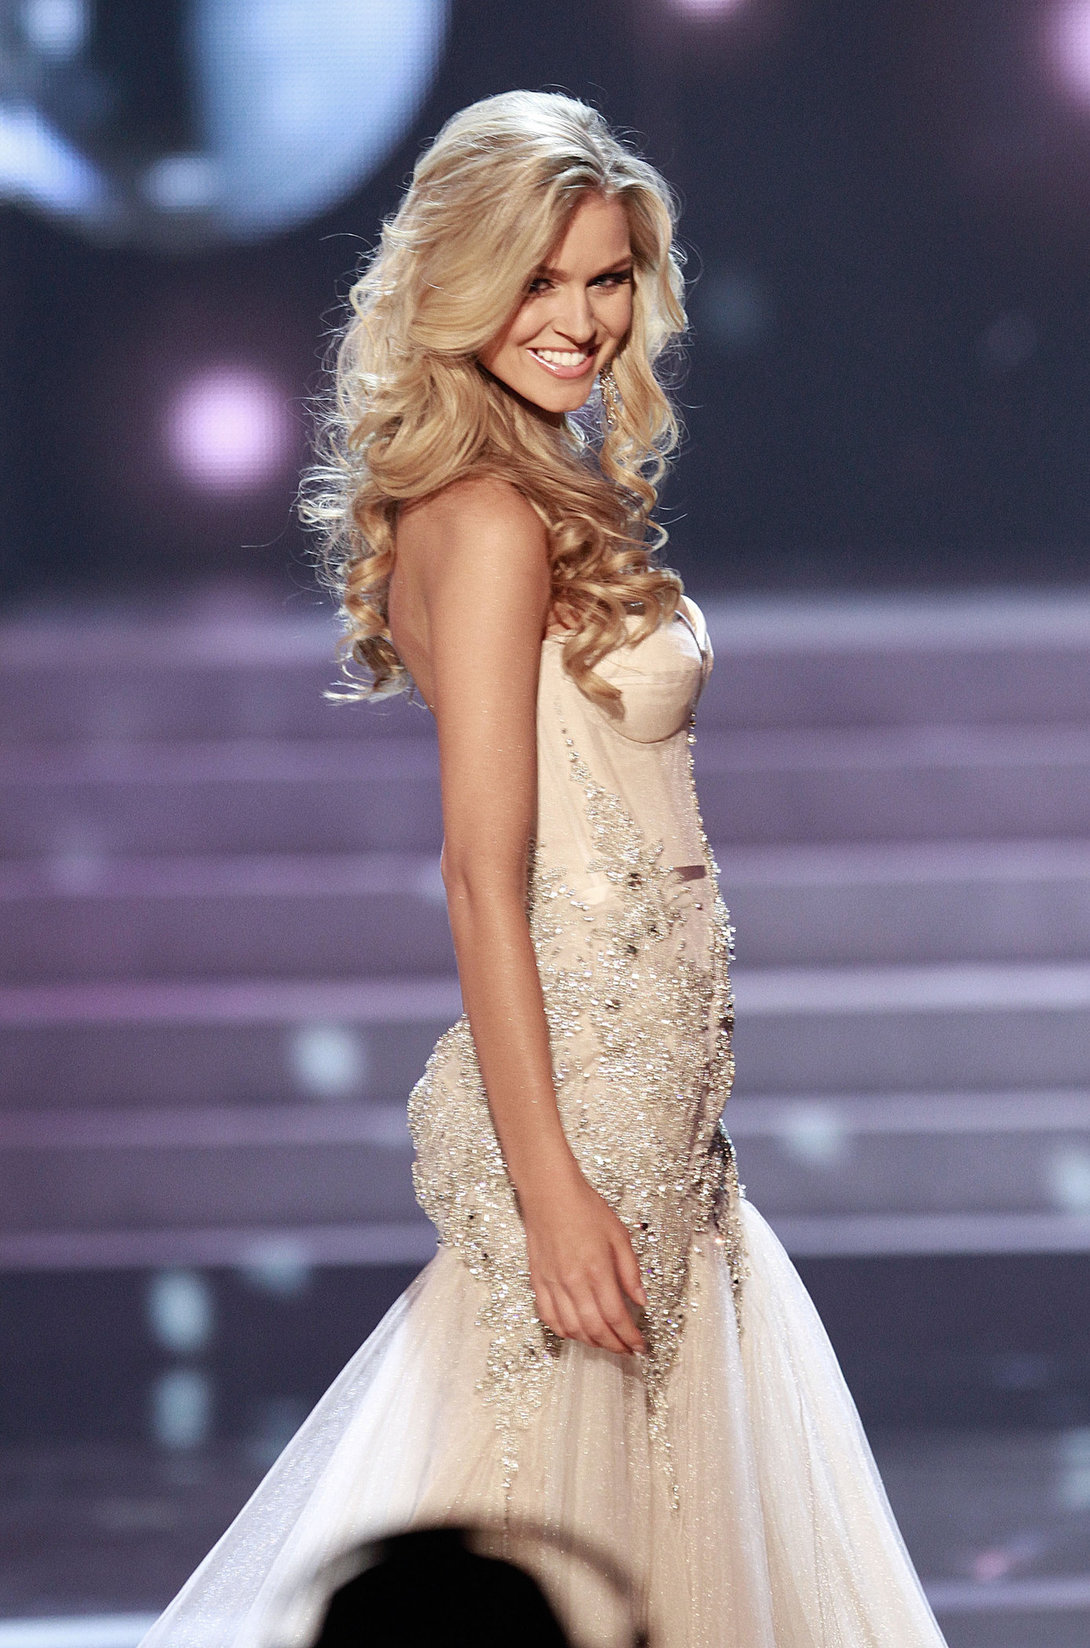 Renae Ayris (Miss Australia) 2012 Miss Universe Pageant in Las Vegas (Dec 19, 2012)